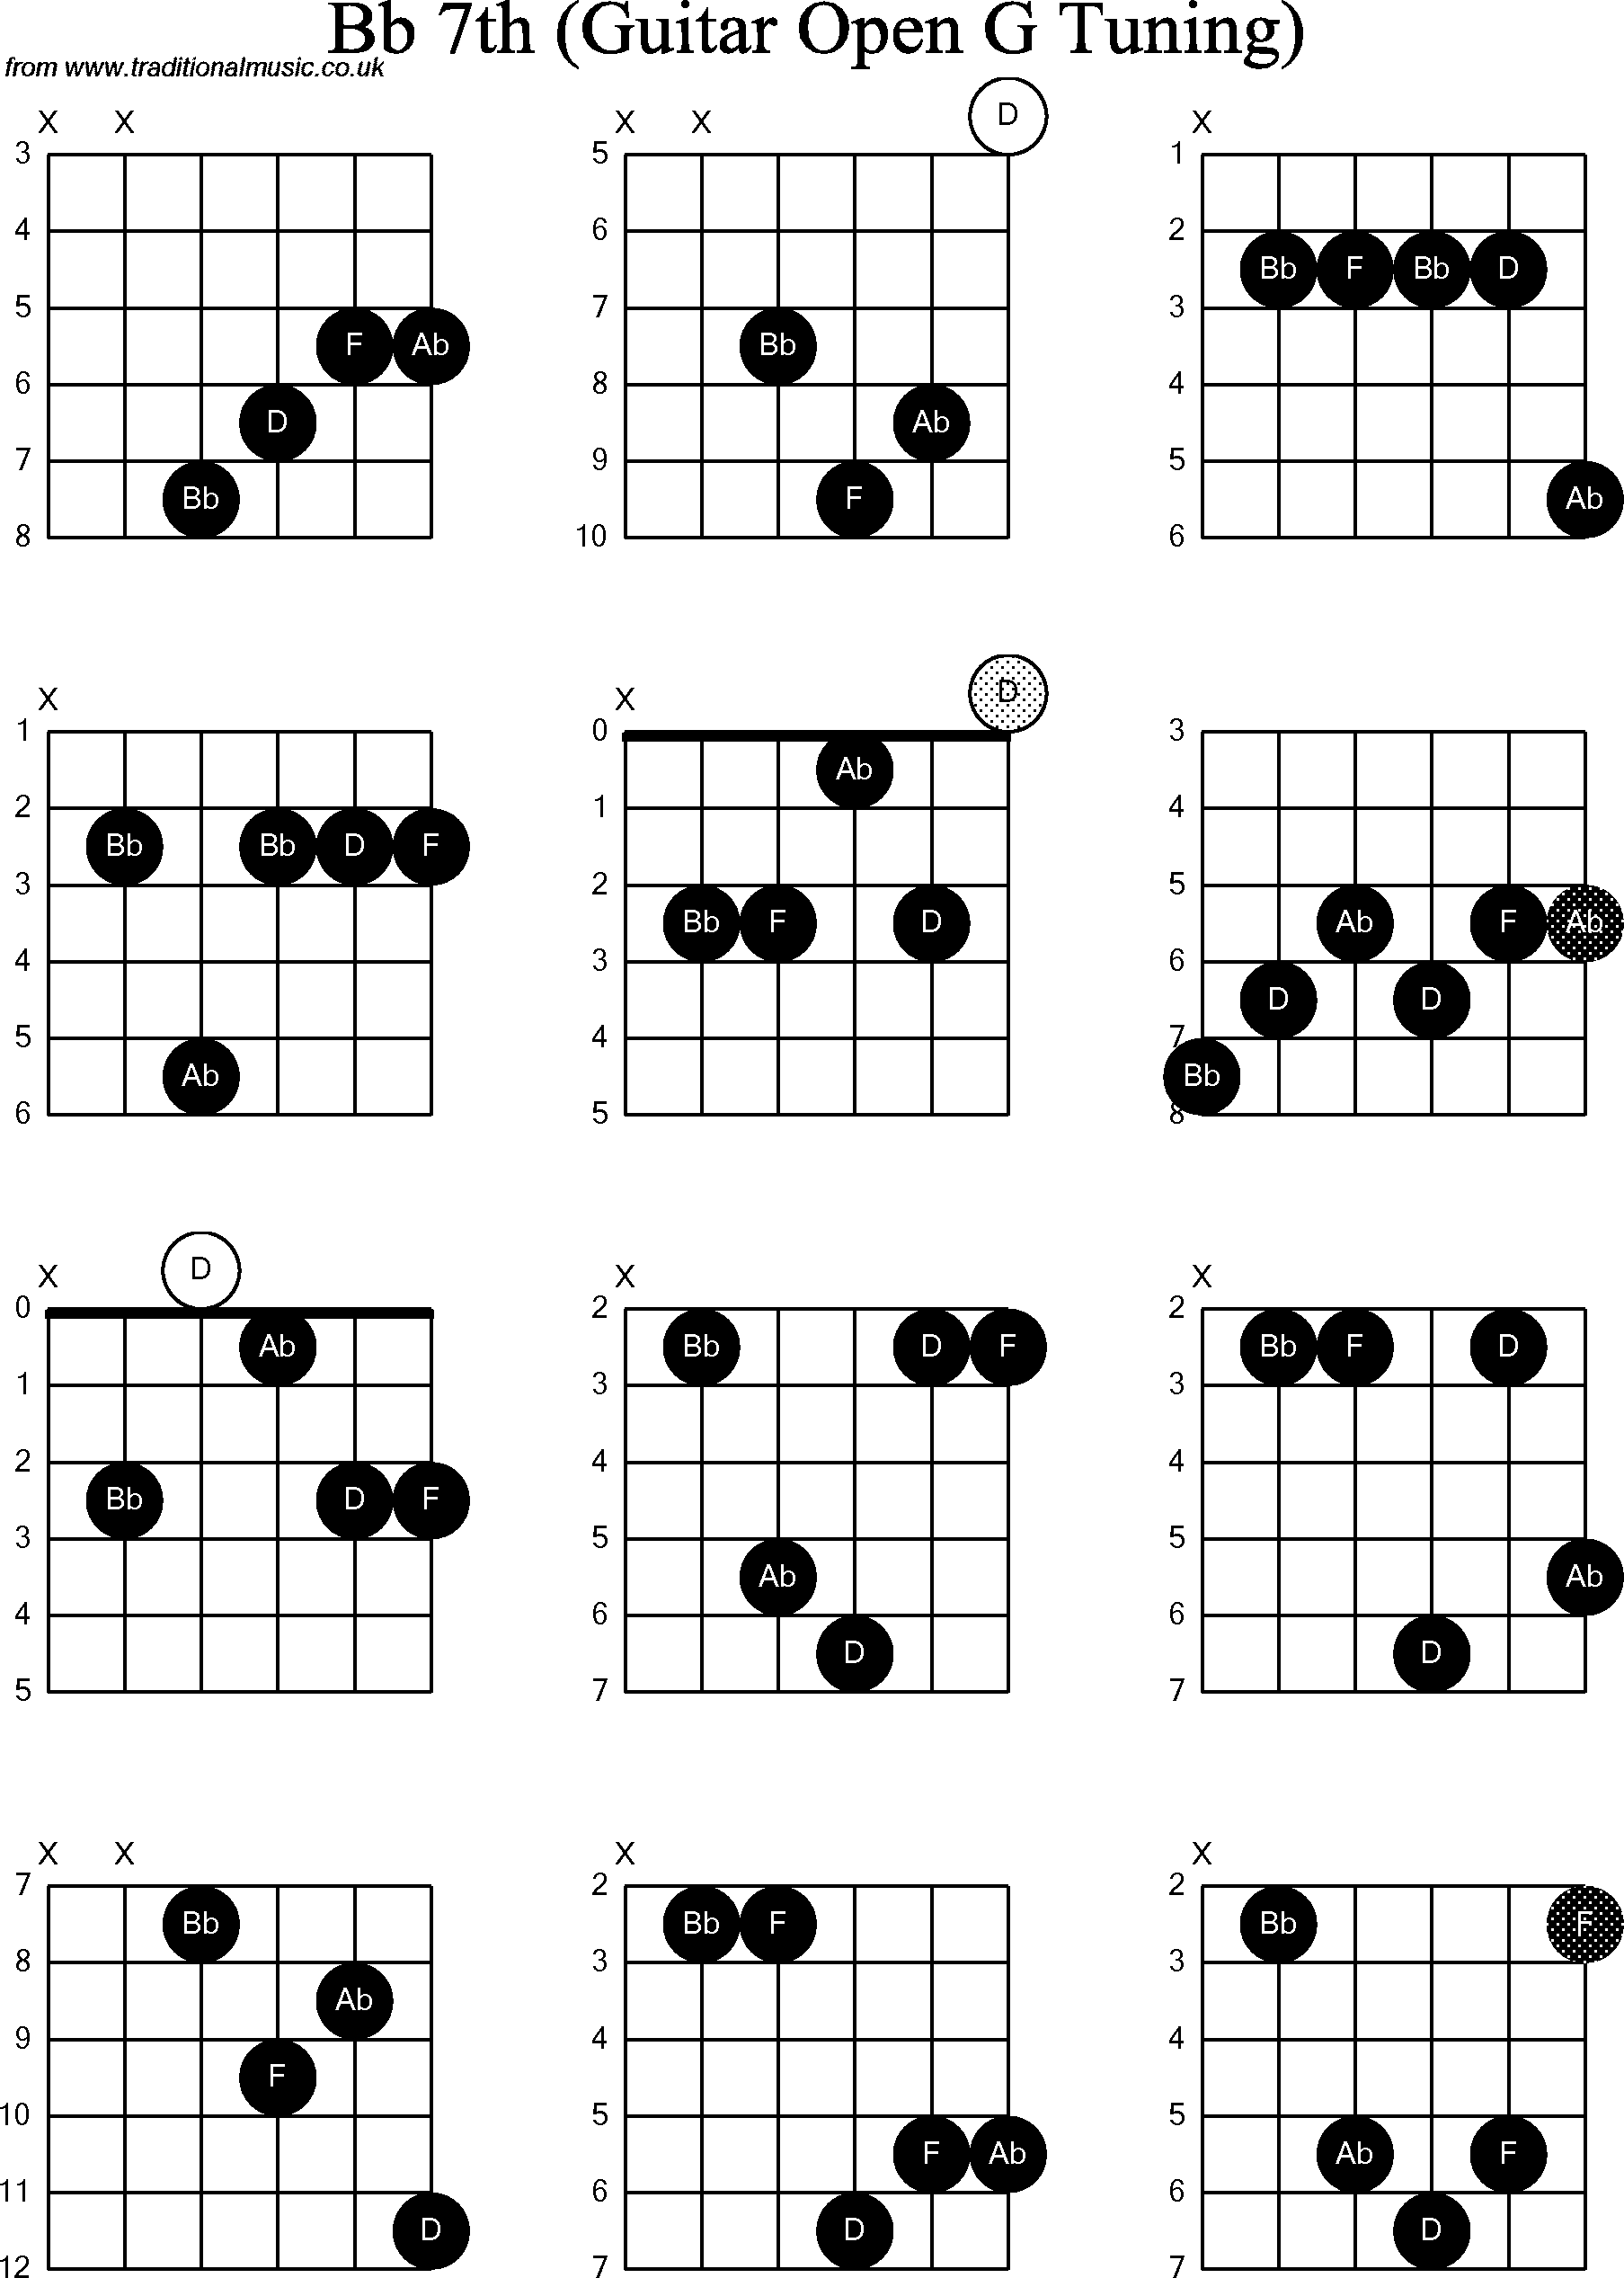 chord diagrams for  dobro bb7th